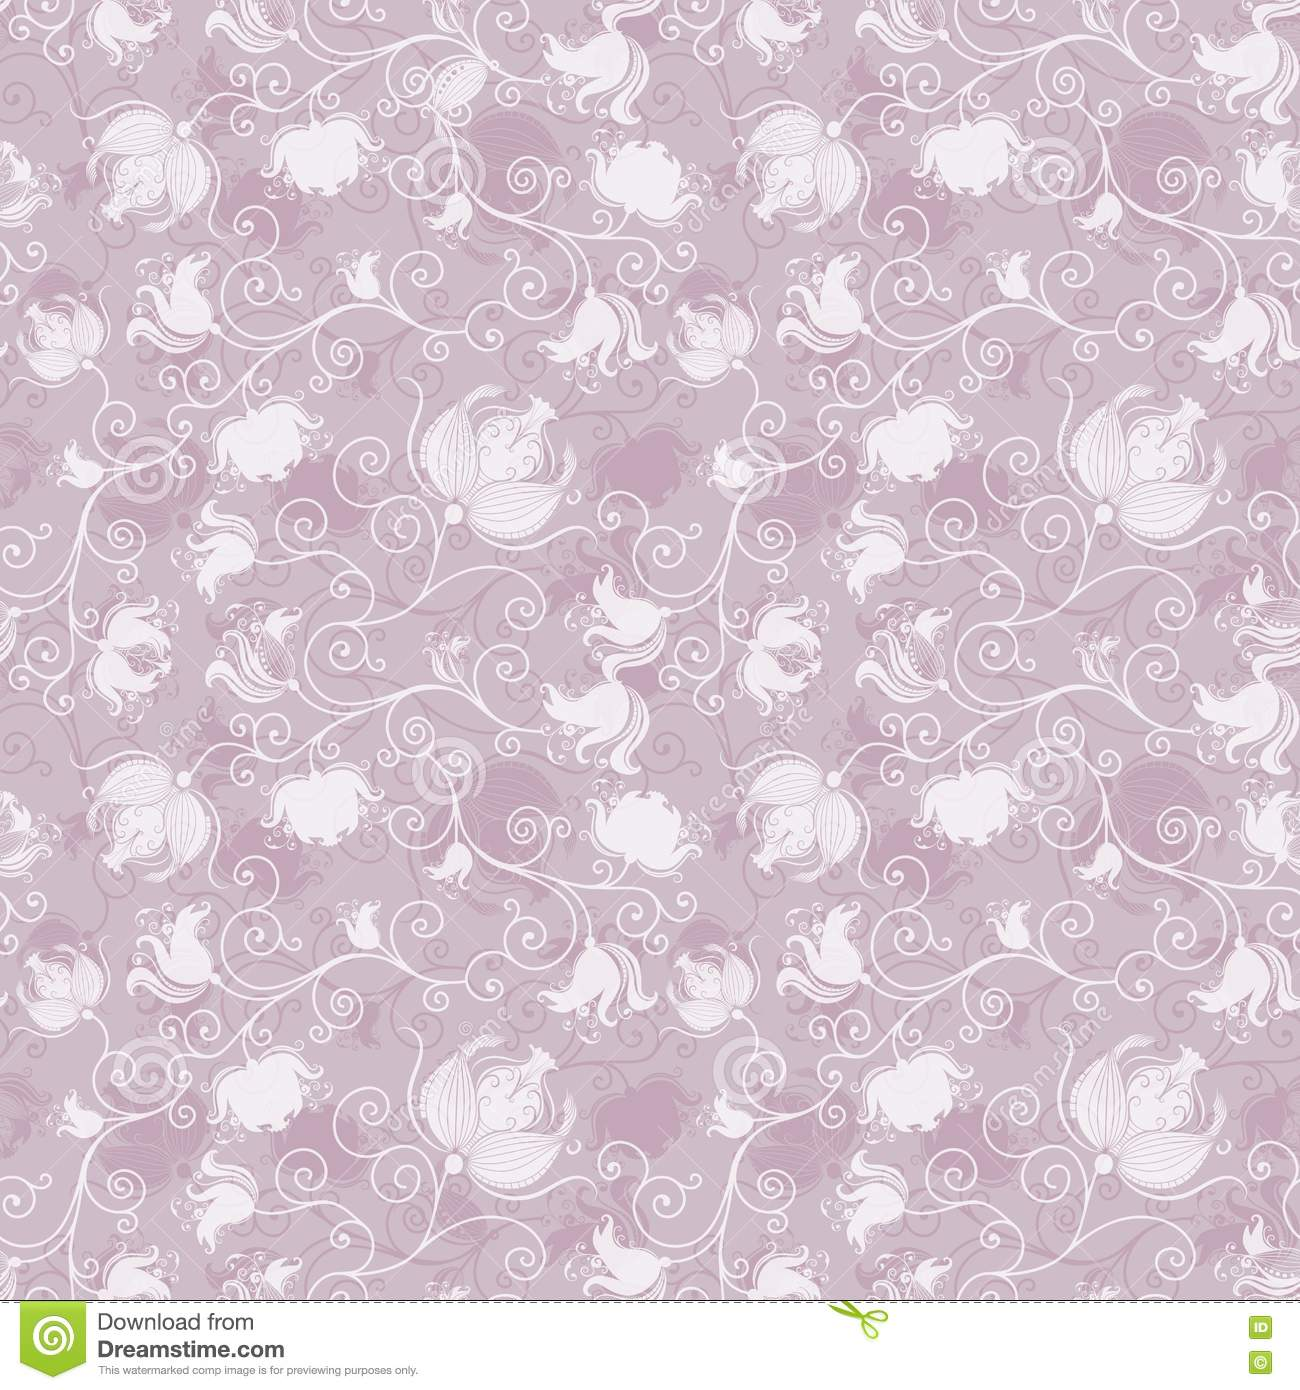 Seamless pink floral pattern - photo#11